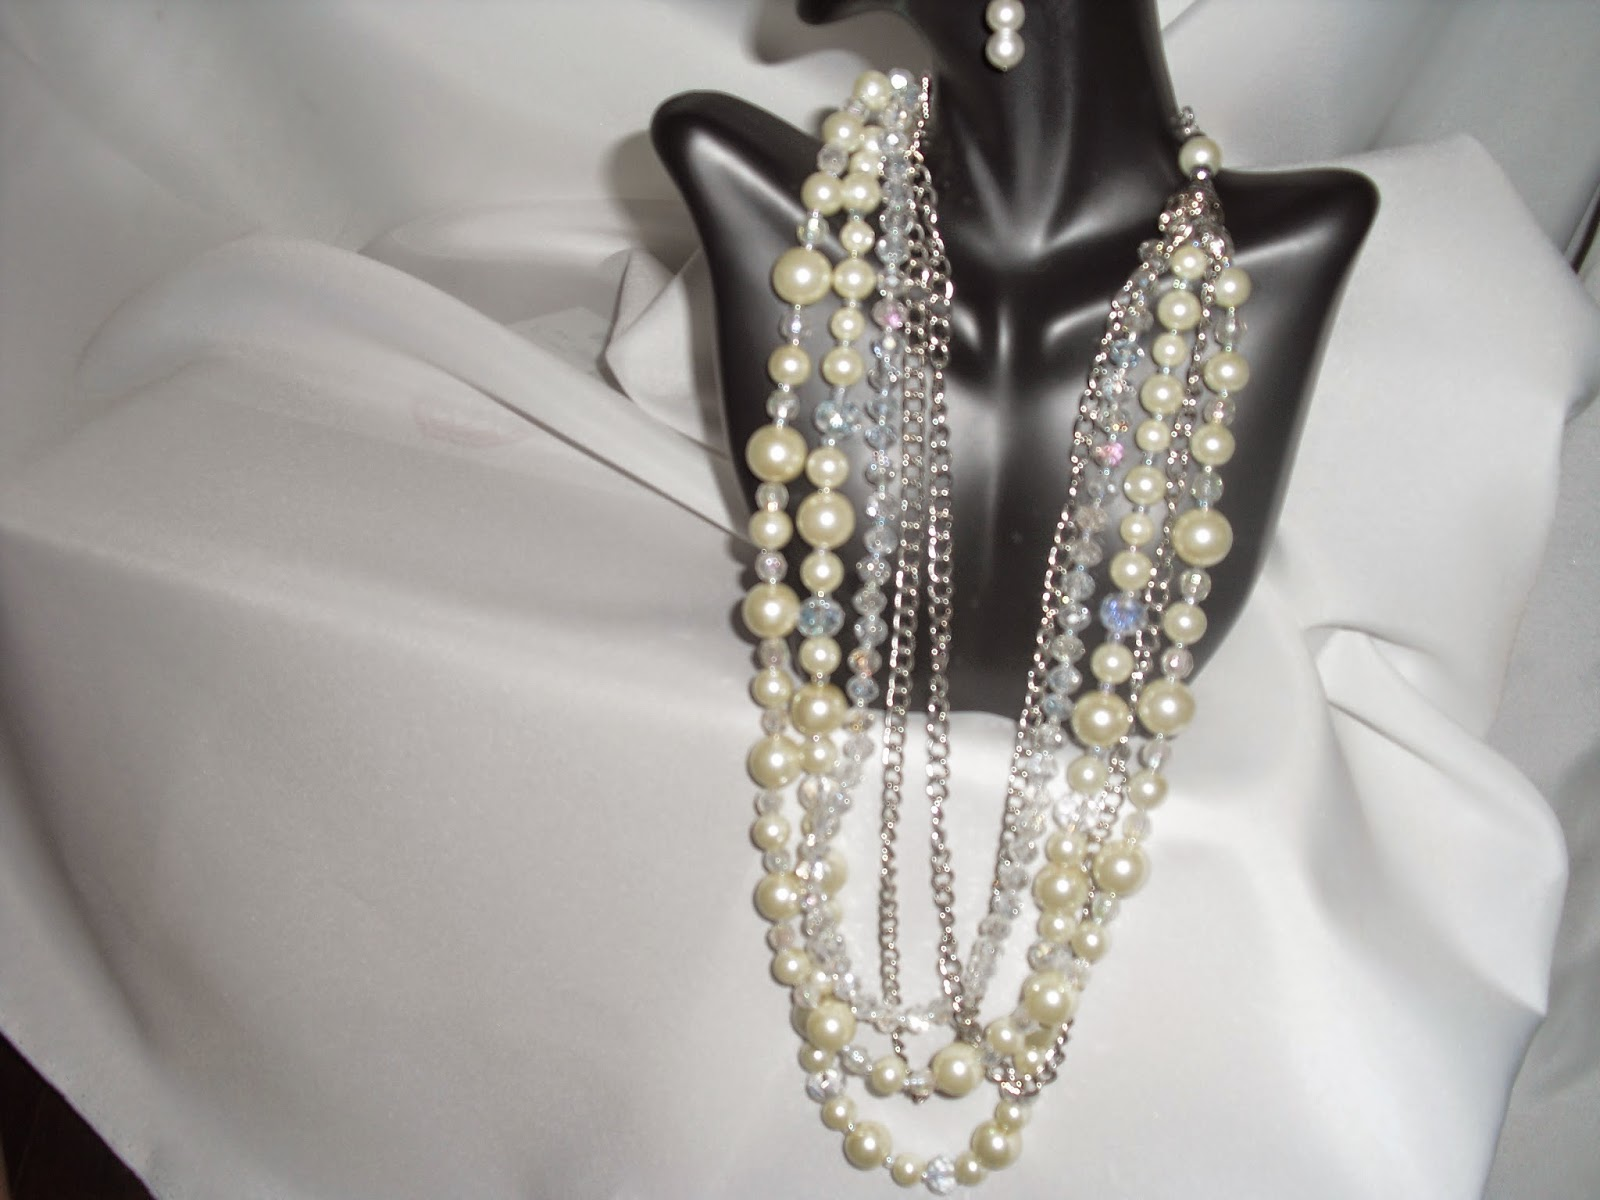 Layer Multiple Strands Of Pearl Necklace According To The Sizes And  Lengths Pearlse In Various Colours Even Though White Is The Most  Popular